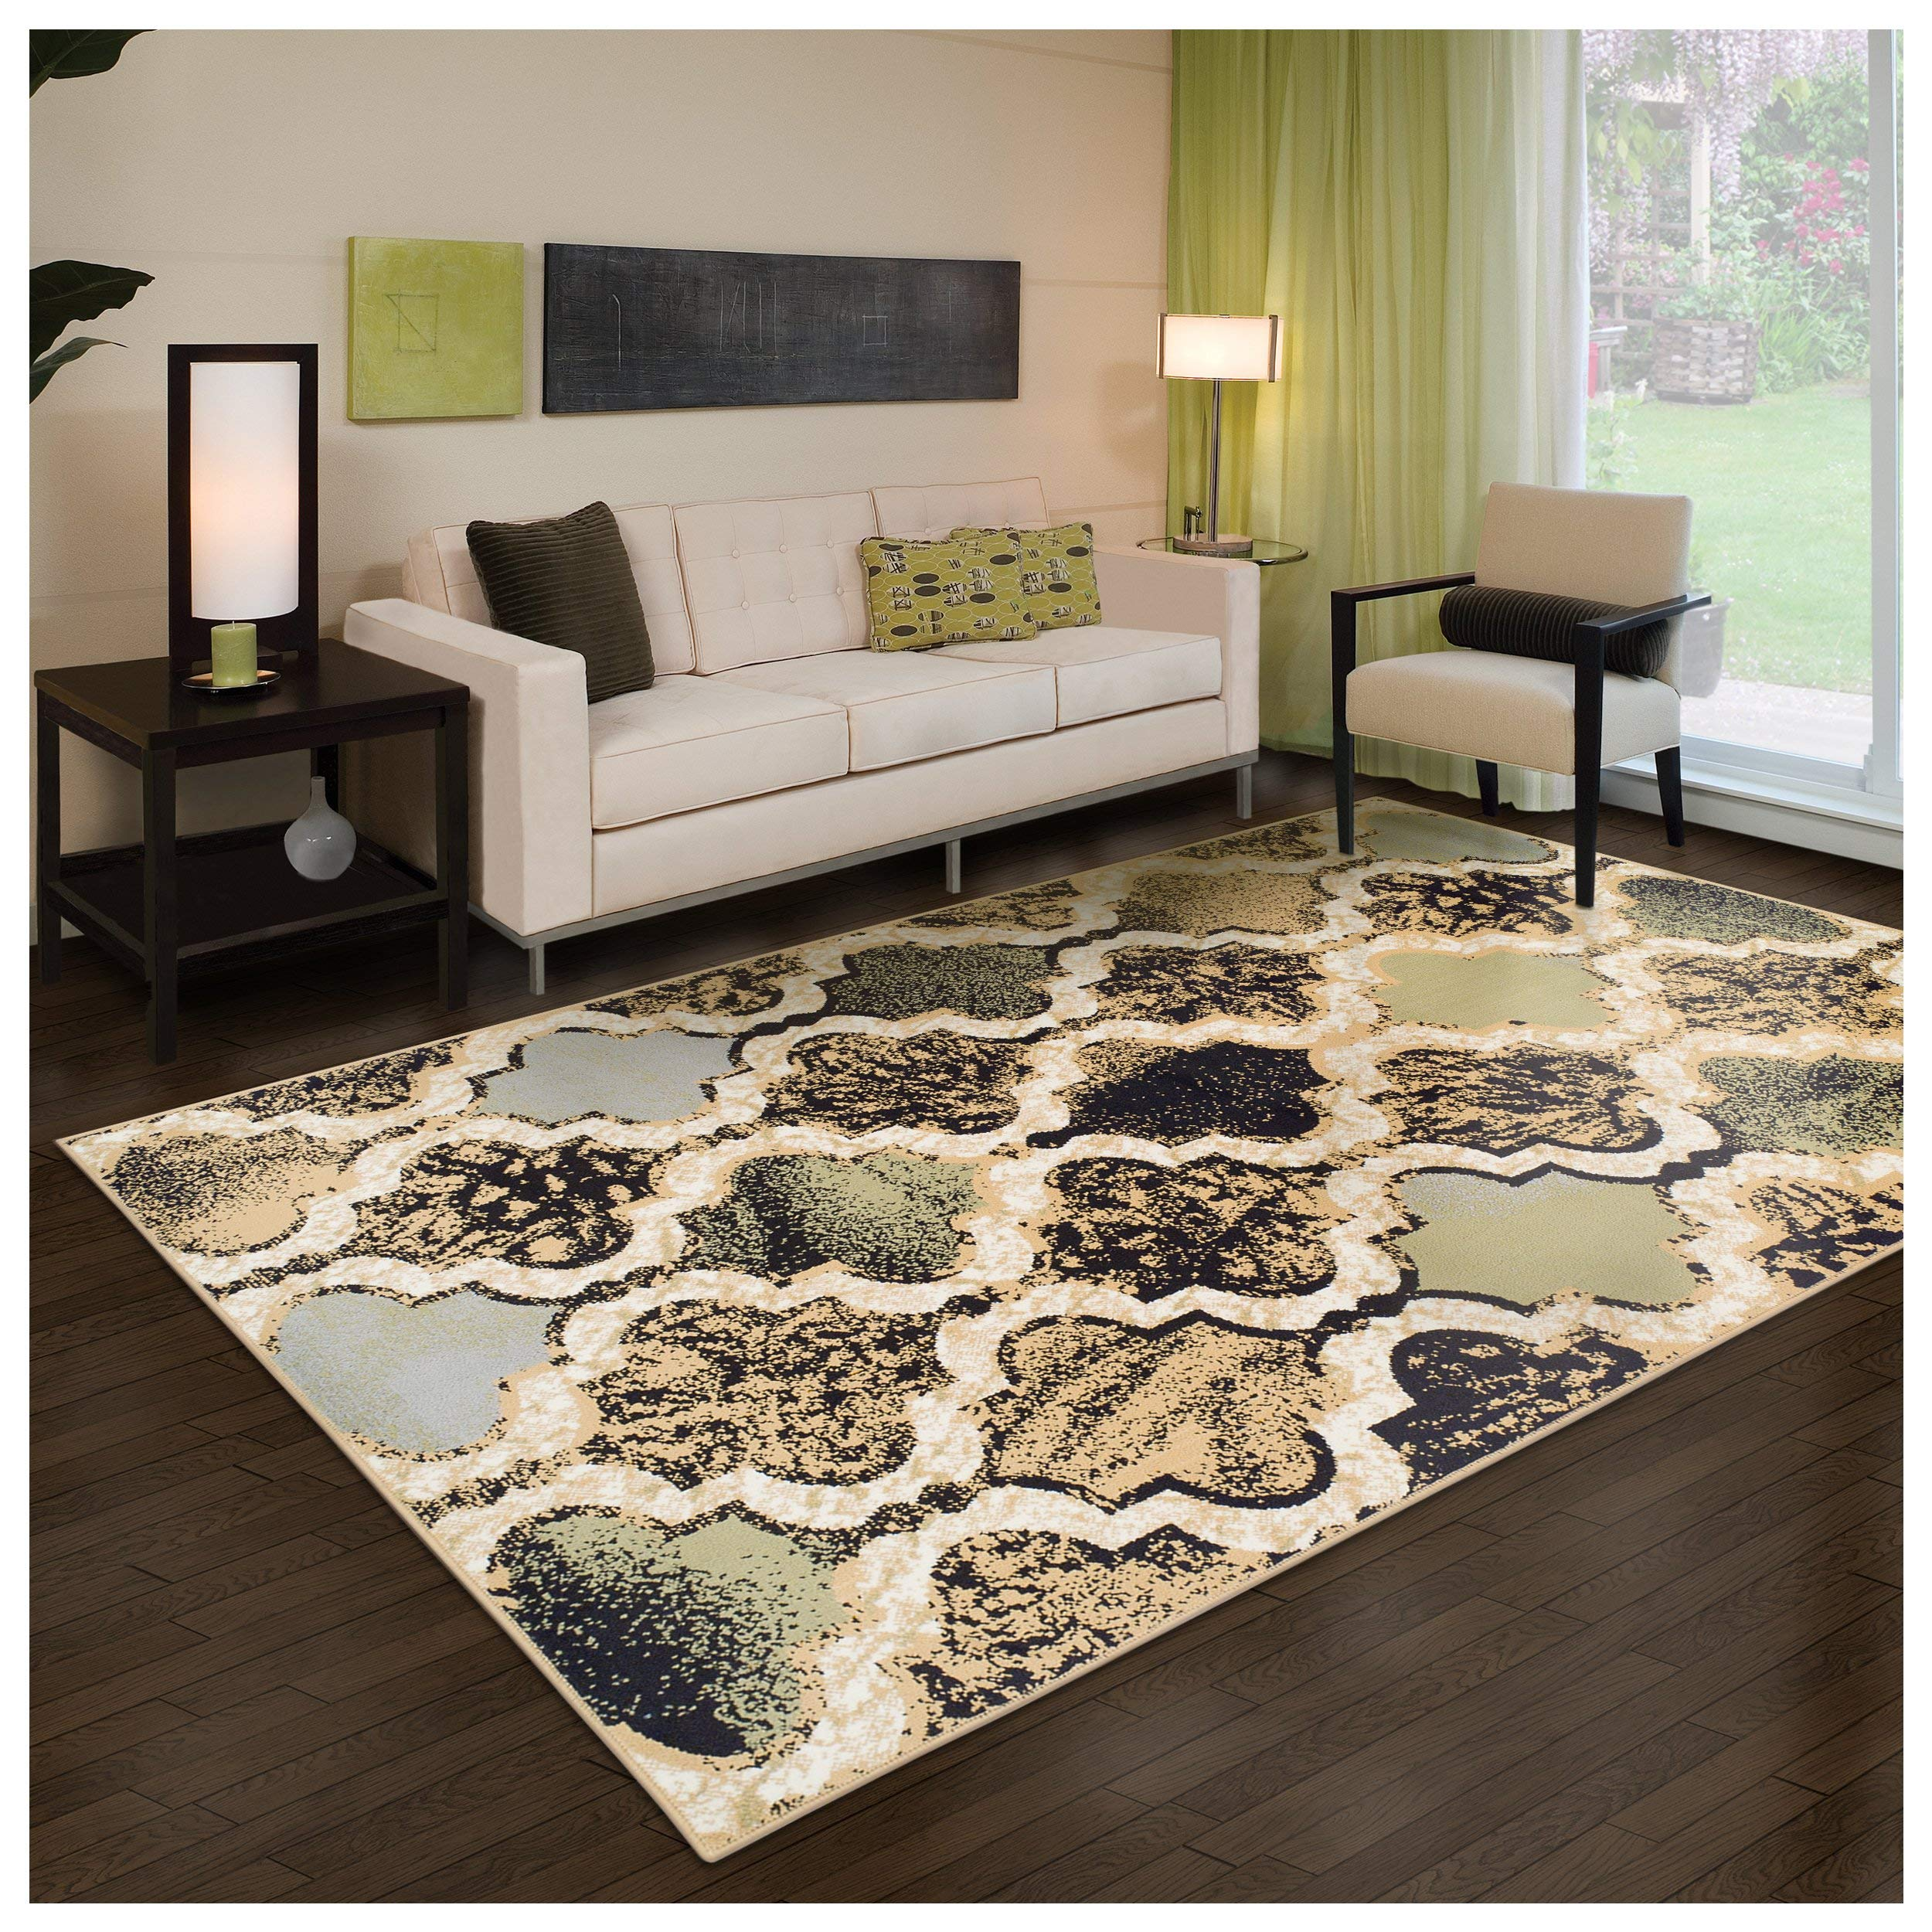 Superior Modern Viking Collection Area Rug, 8mm Pile Height with Jute Backing, Chic Textured Geometric Trellis Pattern, Anti-Static, Water-Repellent Rugs - Multi-Colored, 8' x 10' Rug